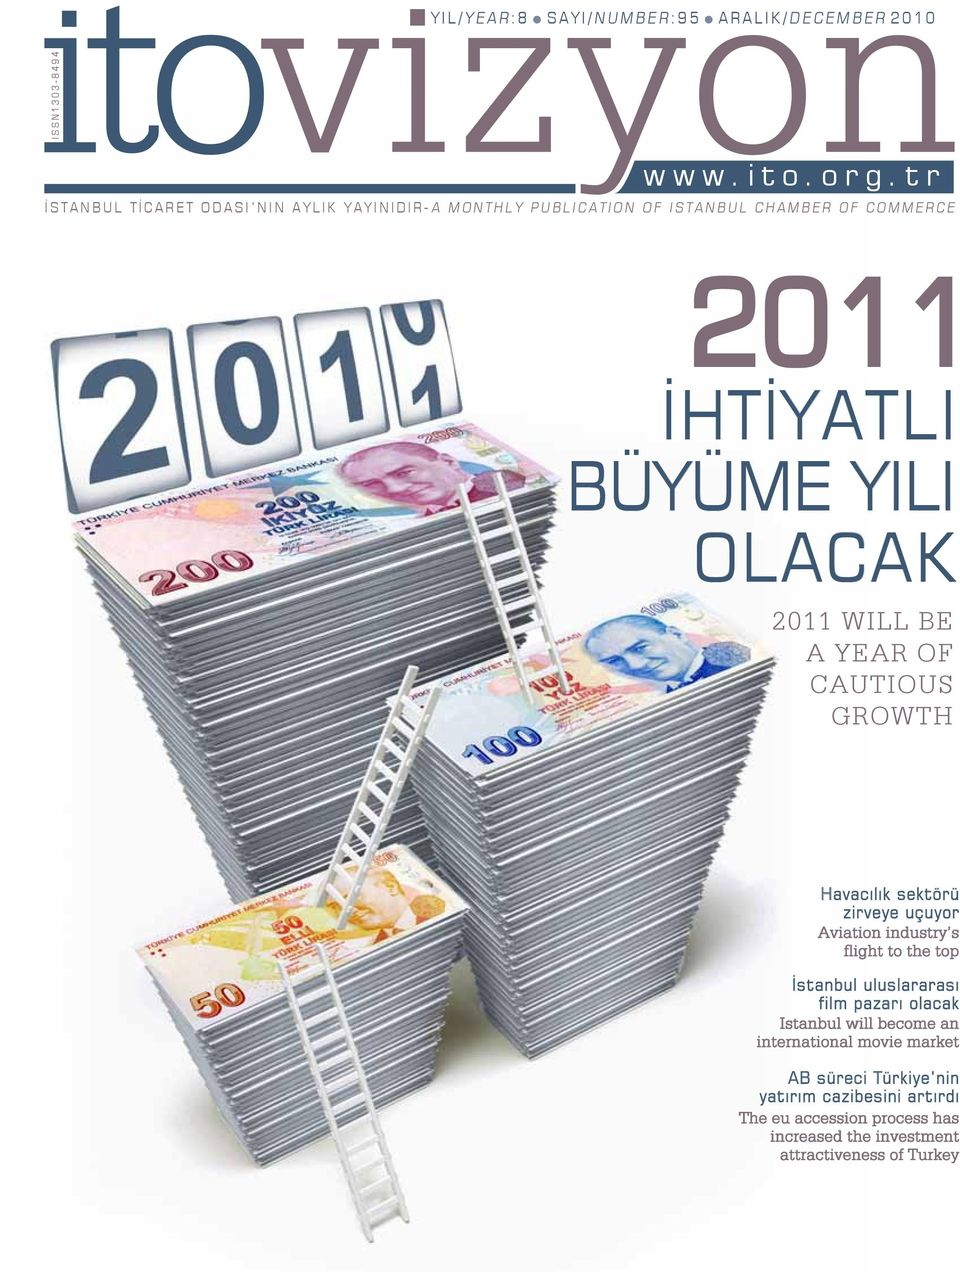 OLACAK 2011 WILL BE A YEAR OF CAUTIOUS GROWTH Havacılık sektörü zirveye uçuyor Aviation industry s flight to the top İstanbul